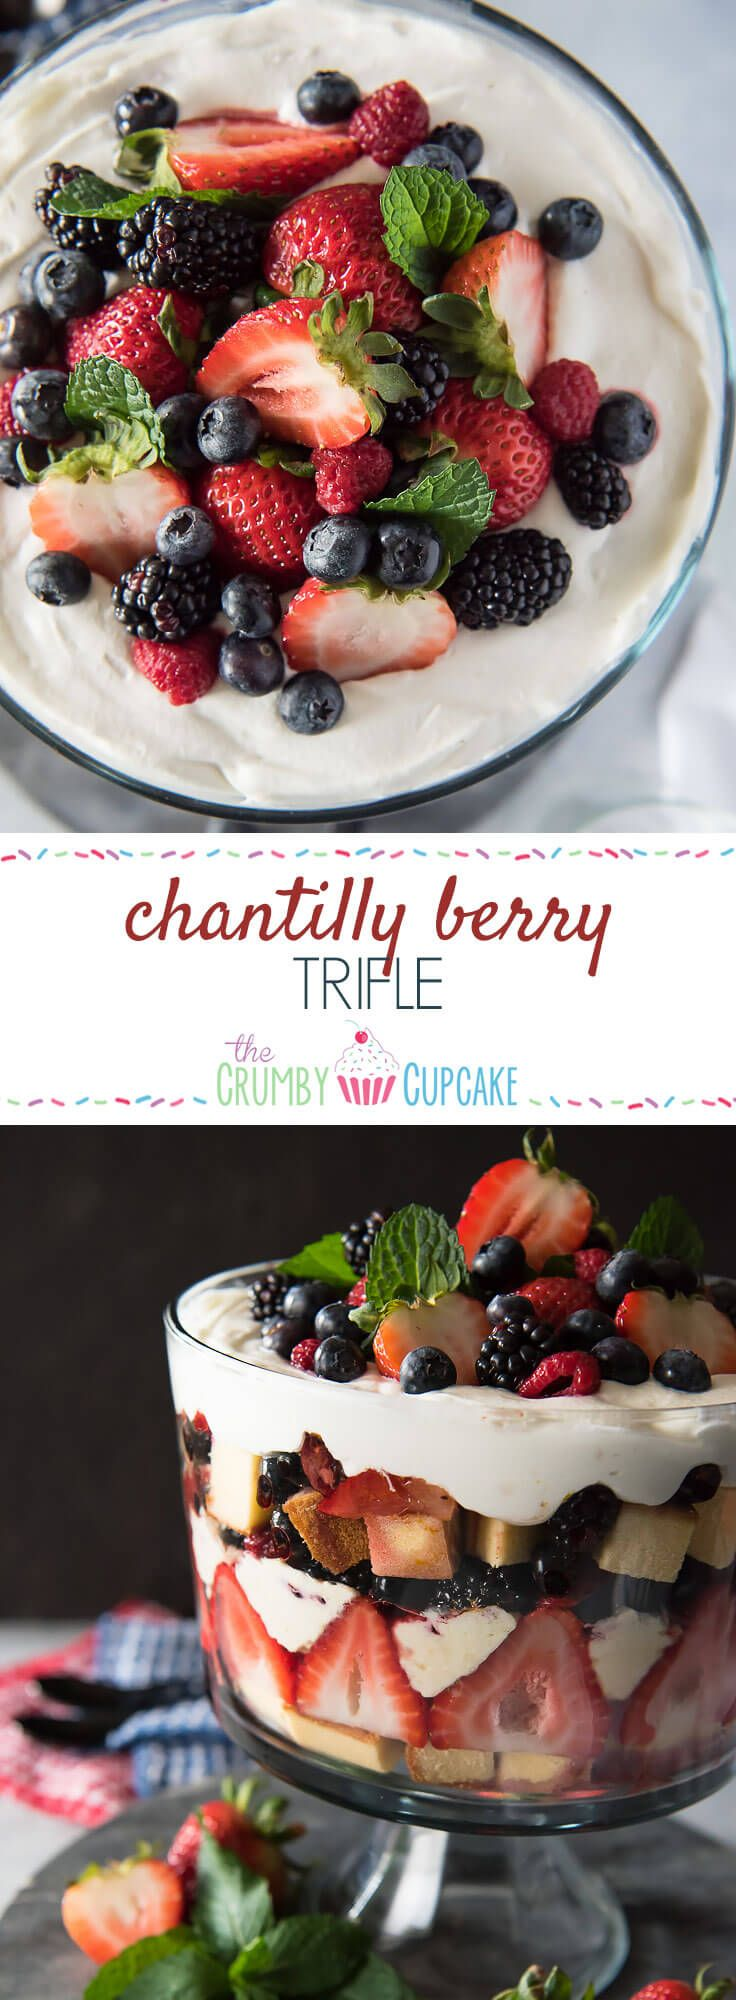 This Chantilly Berry Trifle is a real crowd pleaser! Pound cake, cheesecake filling, whipped cream, and berries marinated in raspberry liqueur make up the layers of this dessert, which is almost too pretty to eat! #SundaySupper